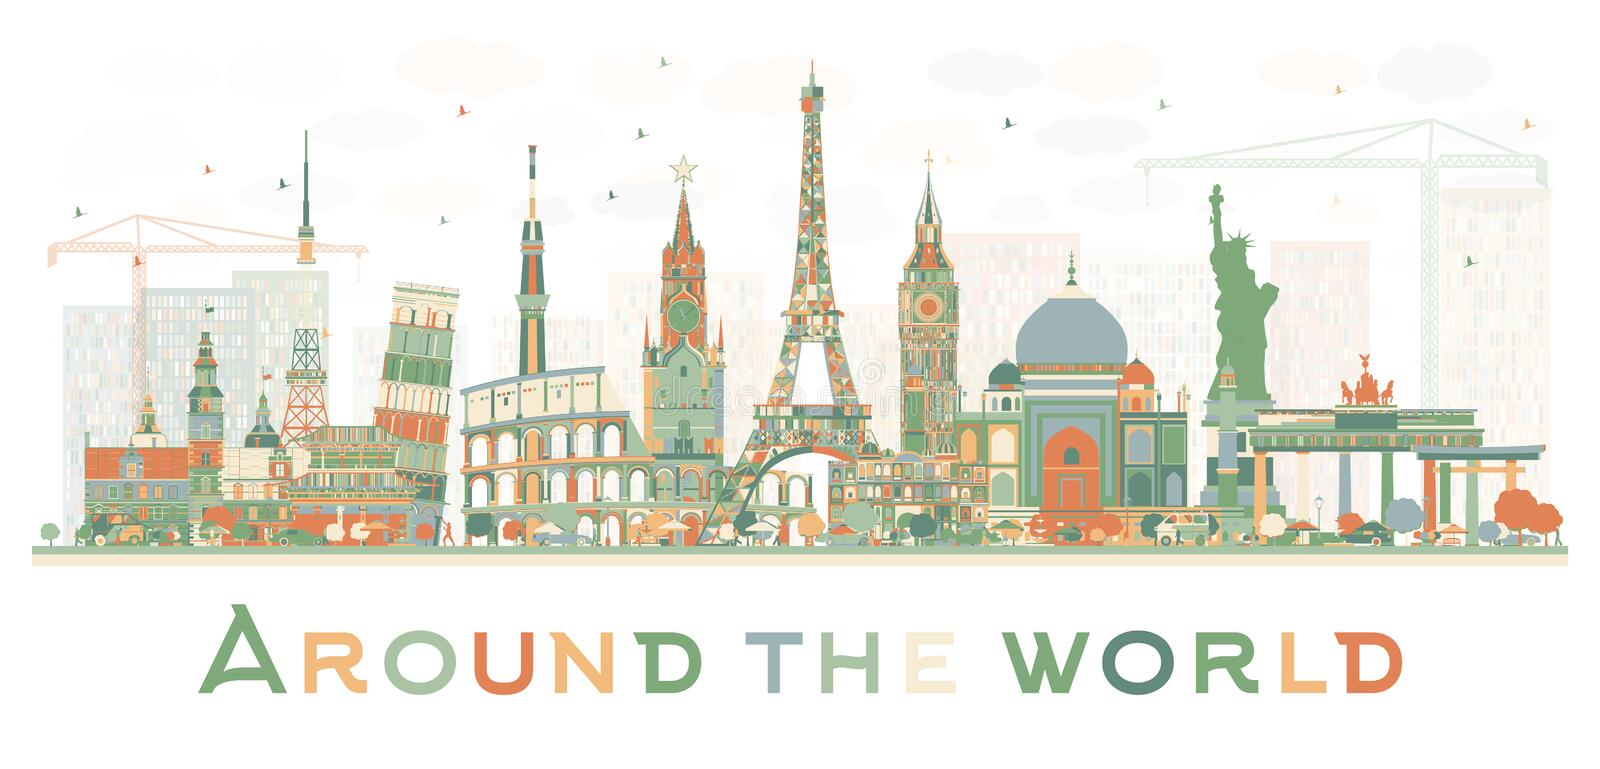 Abstract Travel Concept Around the World with Famous International Landmarks. vector illustration